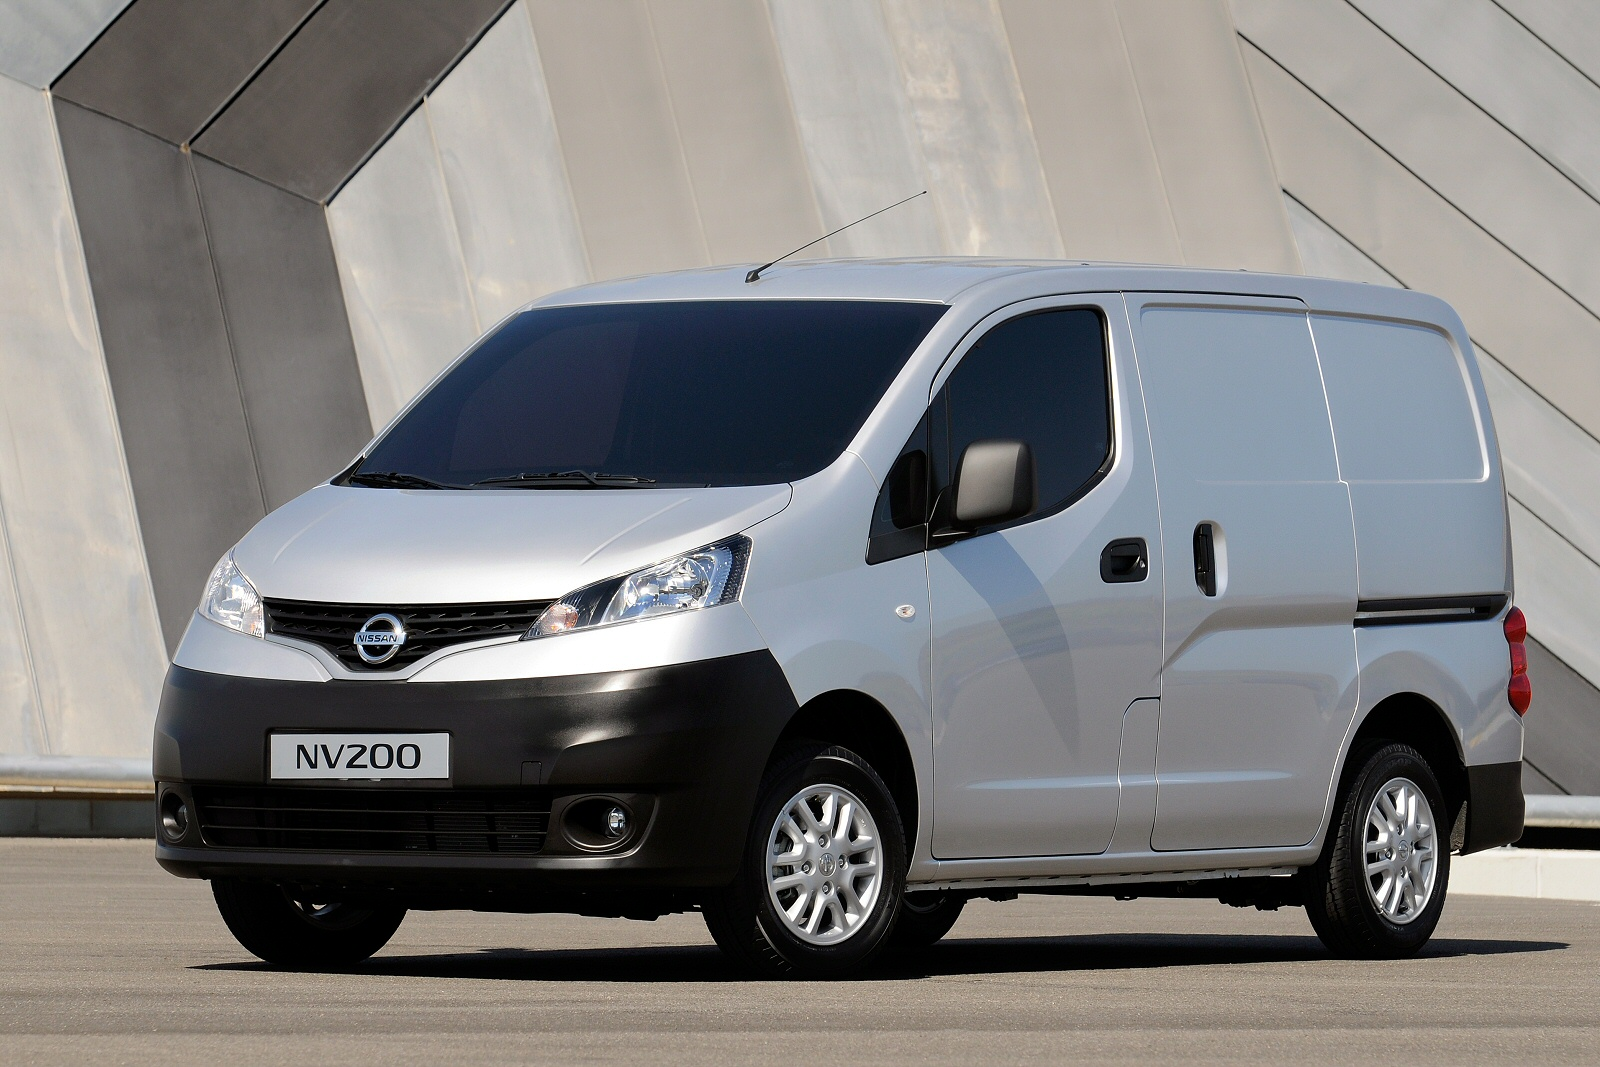 new nissan nv200 diesel 1 5 dci 110 tekna van for sale bristol street. Black Bedroom Furniture Sets. Home Design Ideas